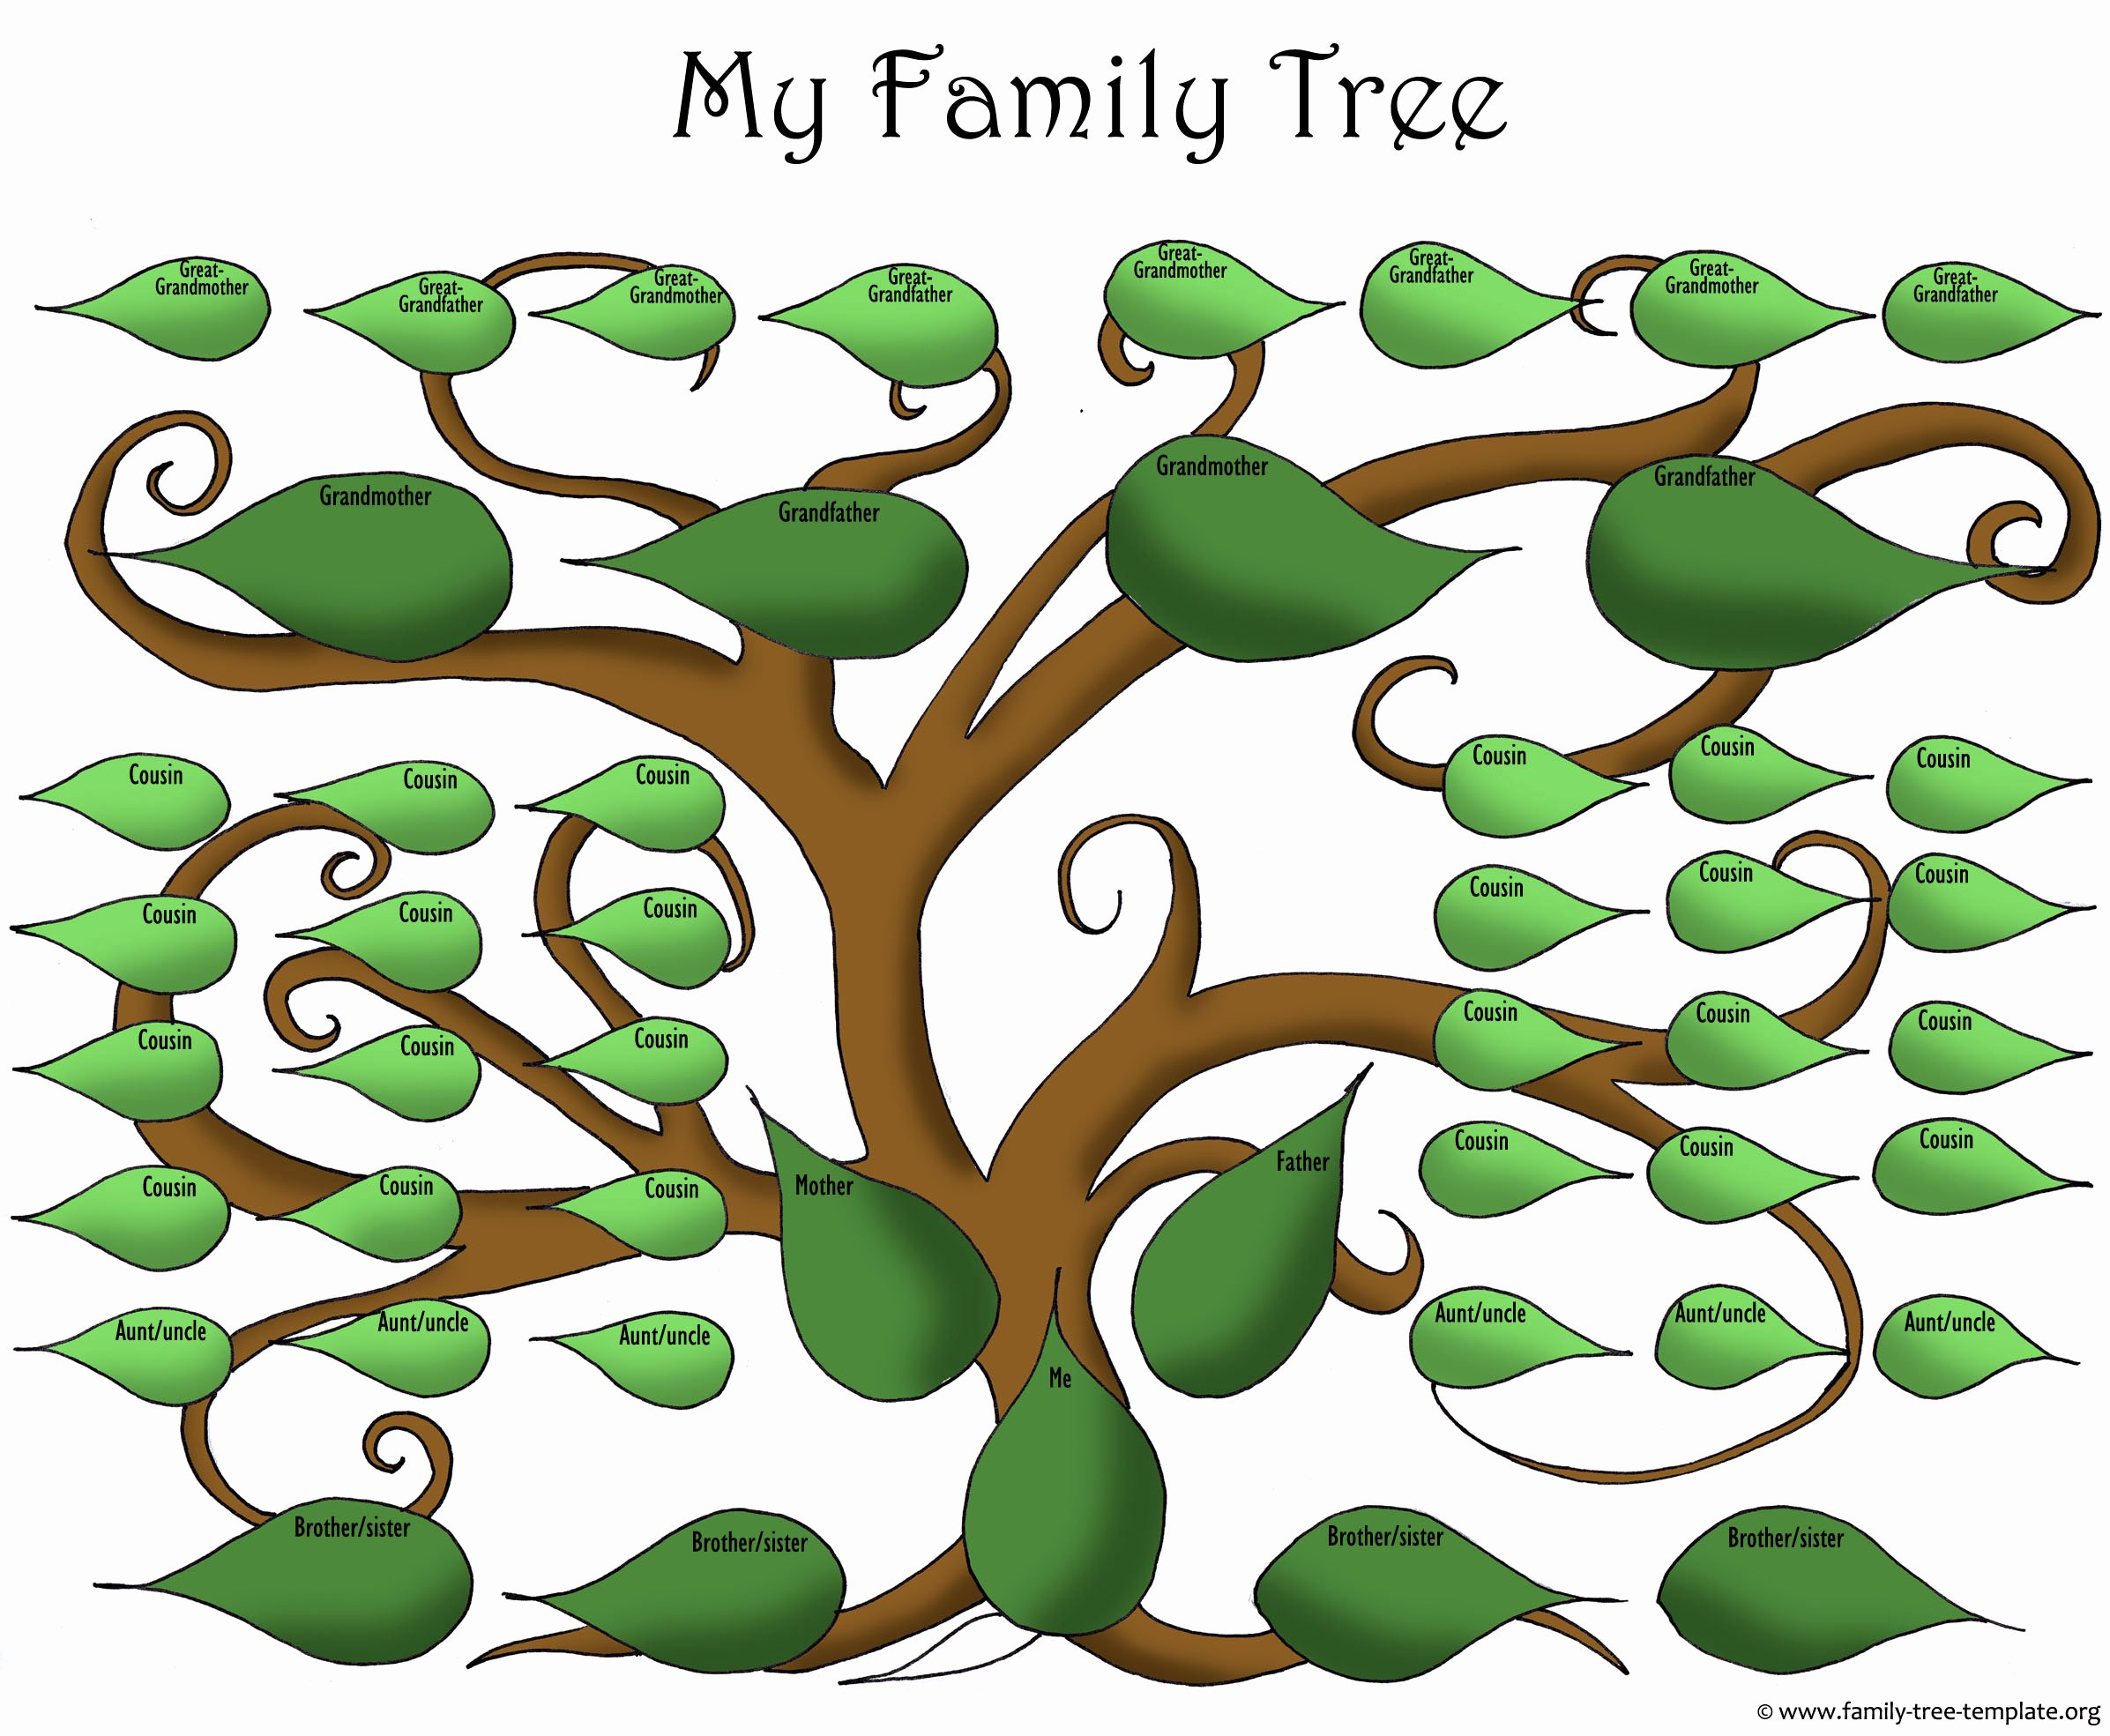 Template for Family Tree New A Printable Blank Family Tree to Make Your Kids Genealogy